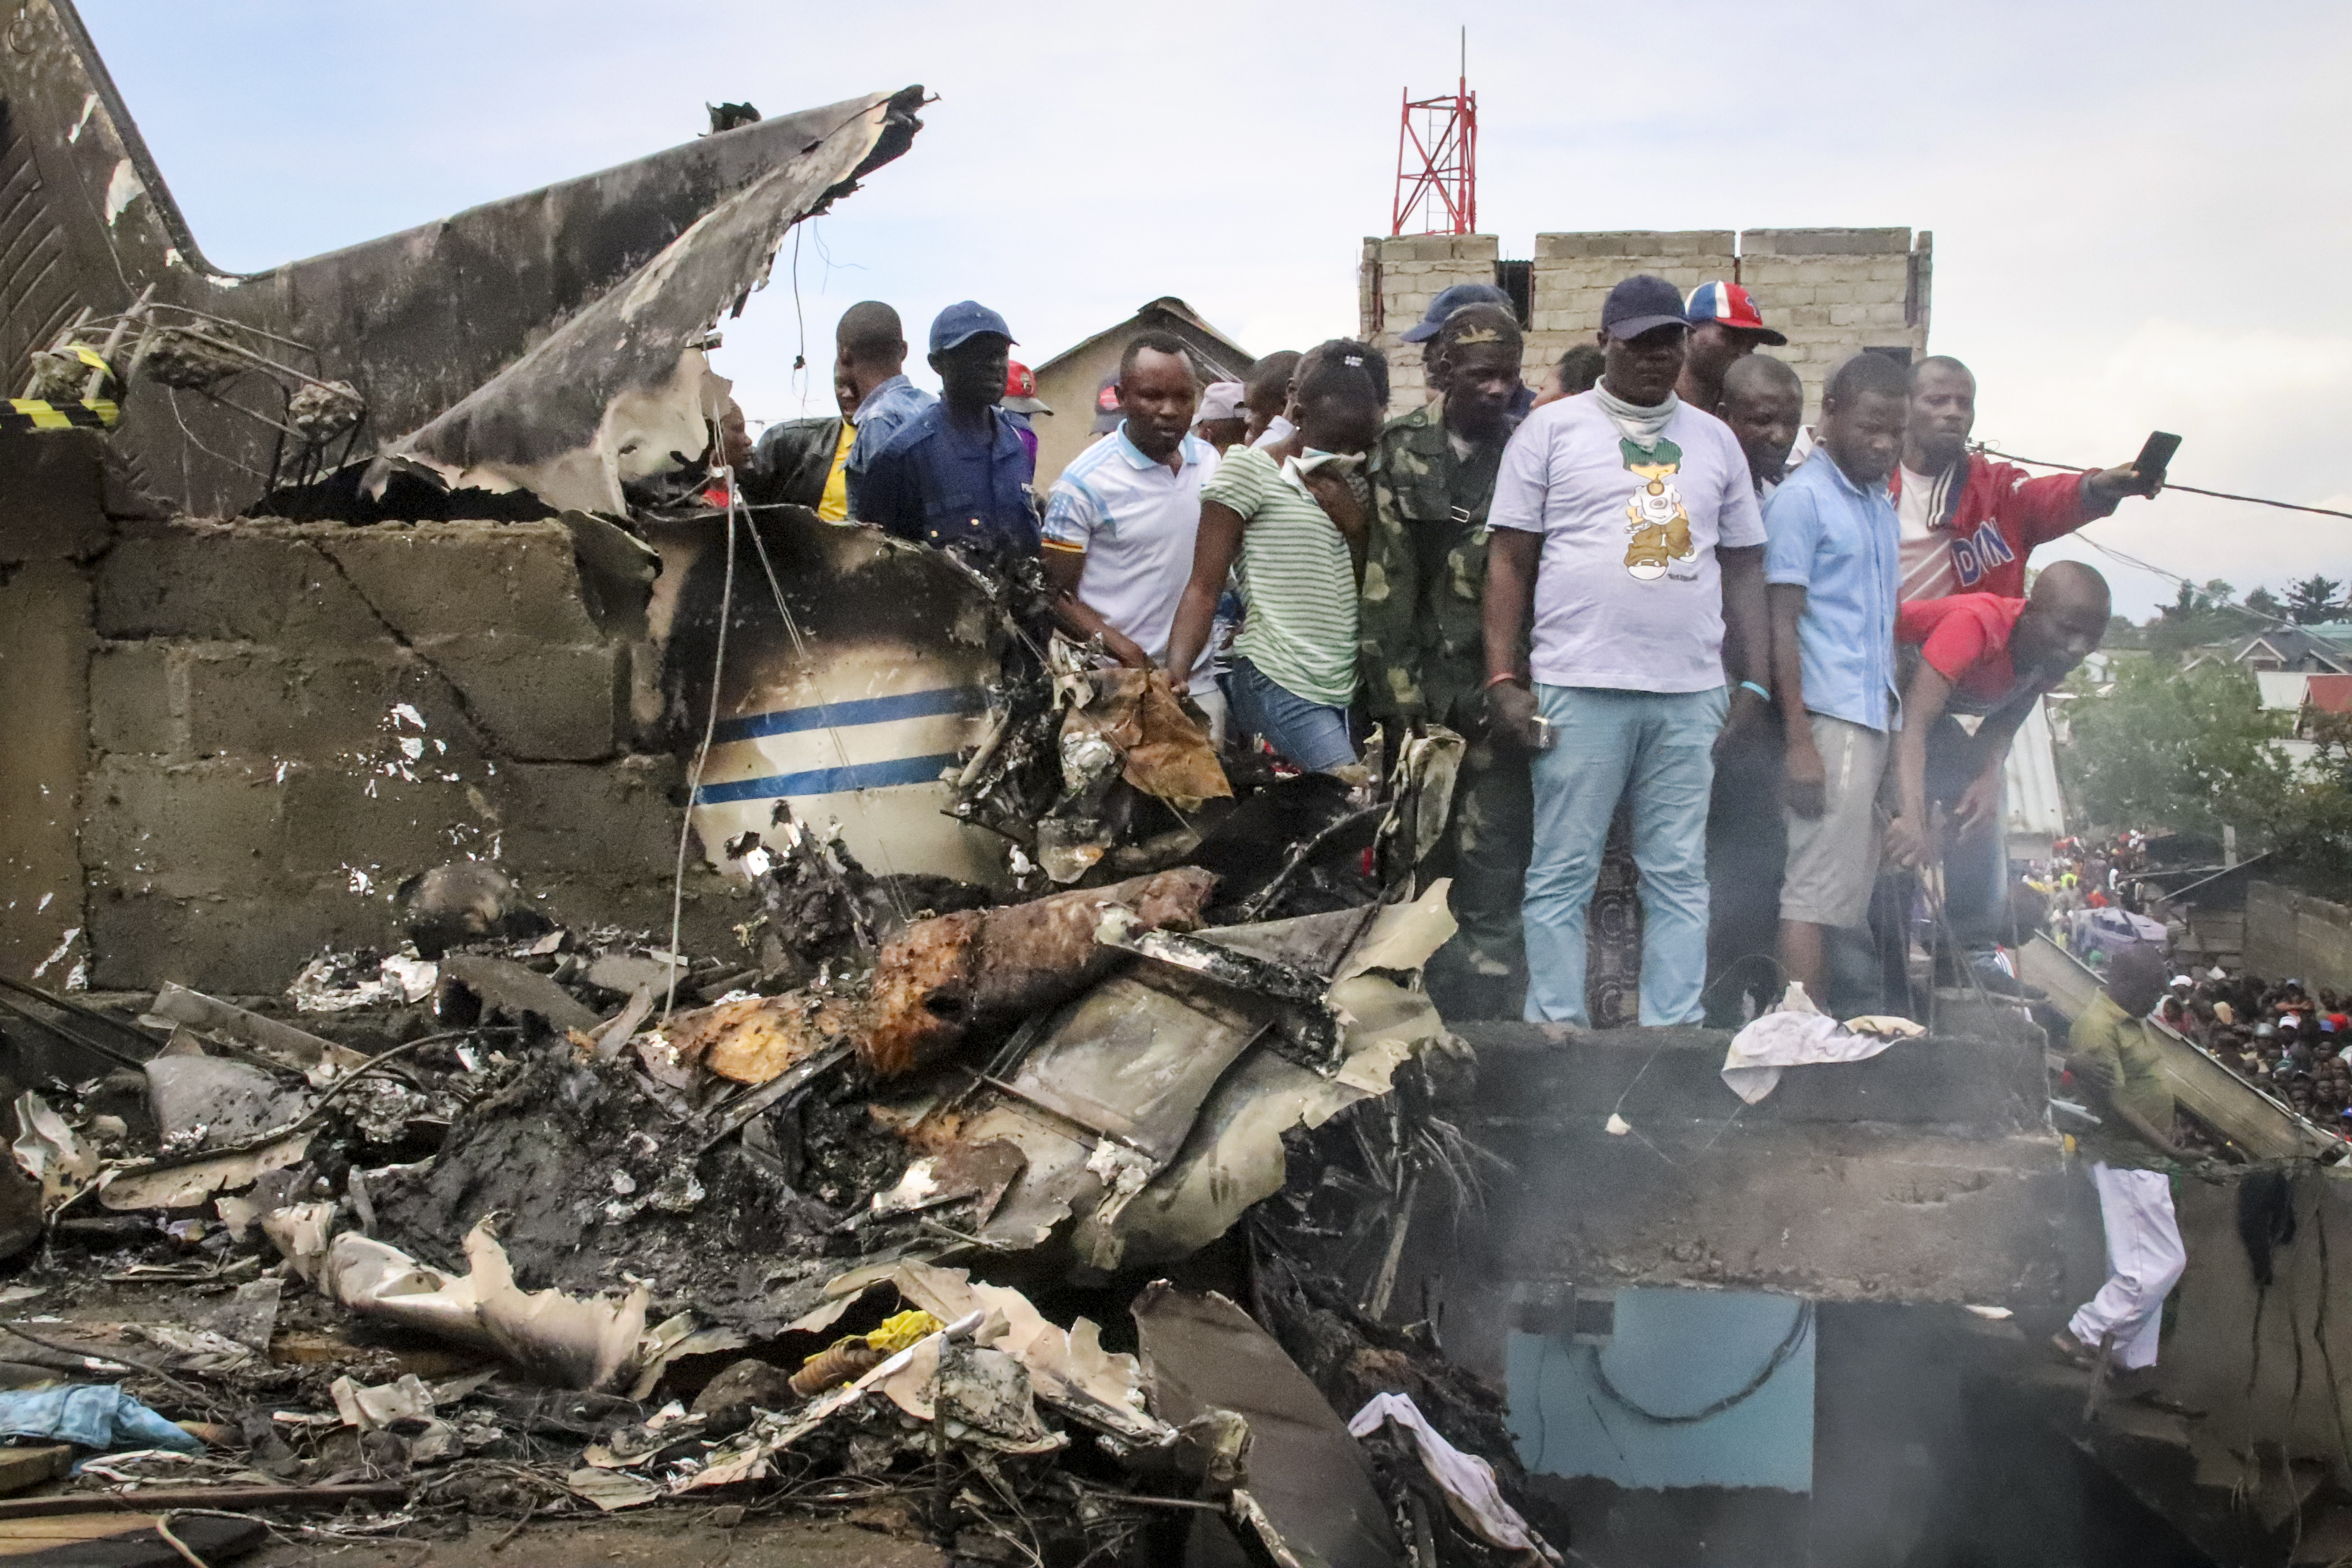 Rescuers and onlookers gather amidst the debris of an aircraft operated by private carrier Busy Bee which crashed in Goma, Congo Sunday, Nov. 24, 2019.